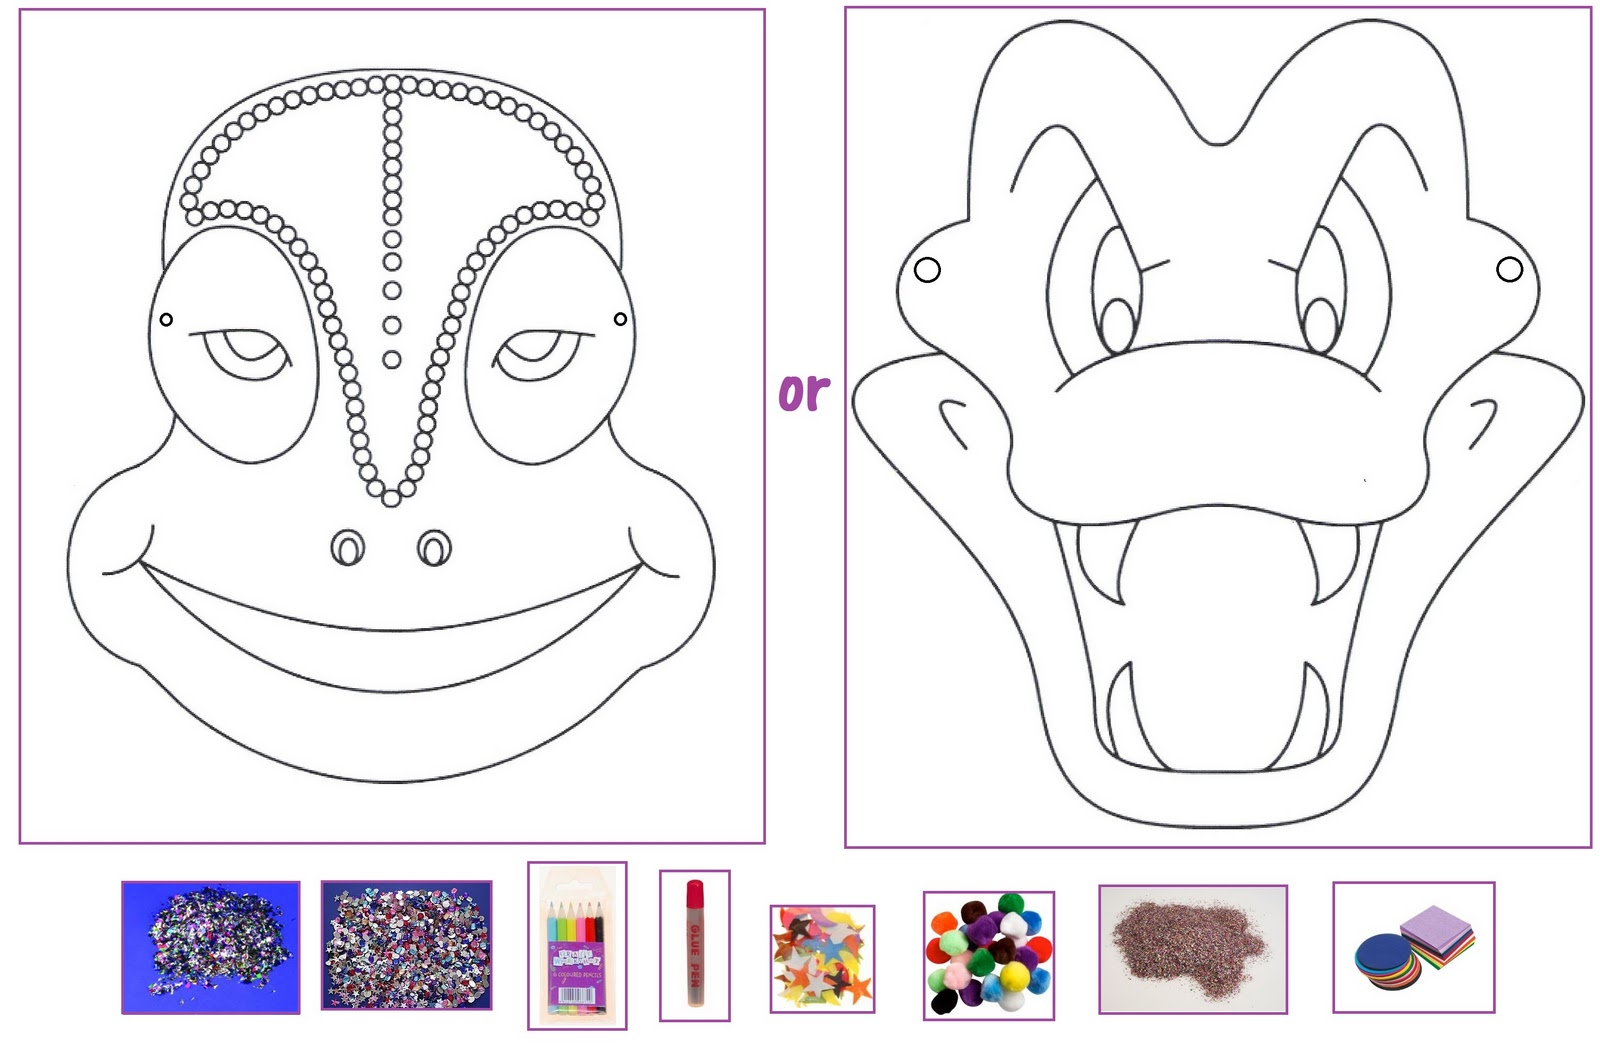 Free Printable Masks Templates - drama mask template needles groove ooh baby baby how to make salt drama mask template needles g